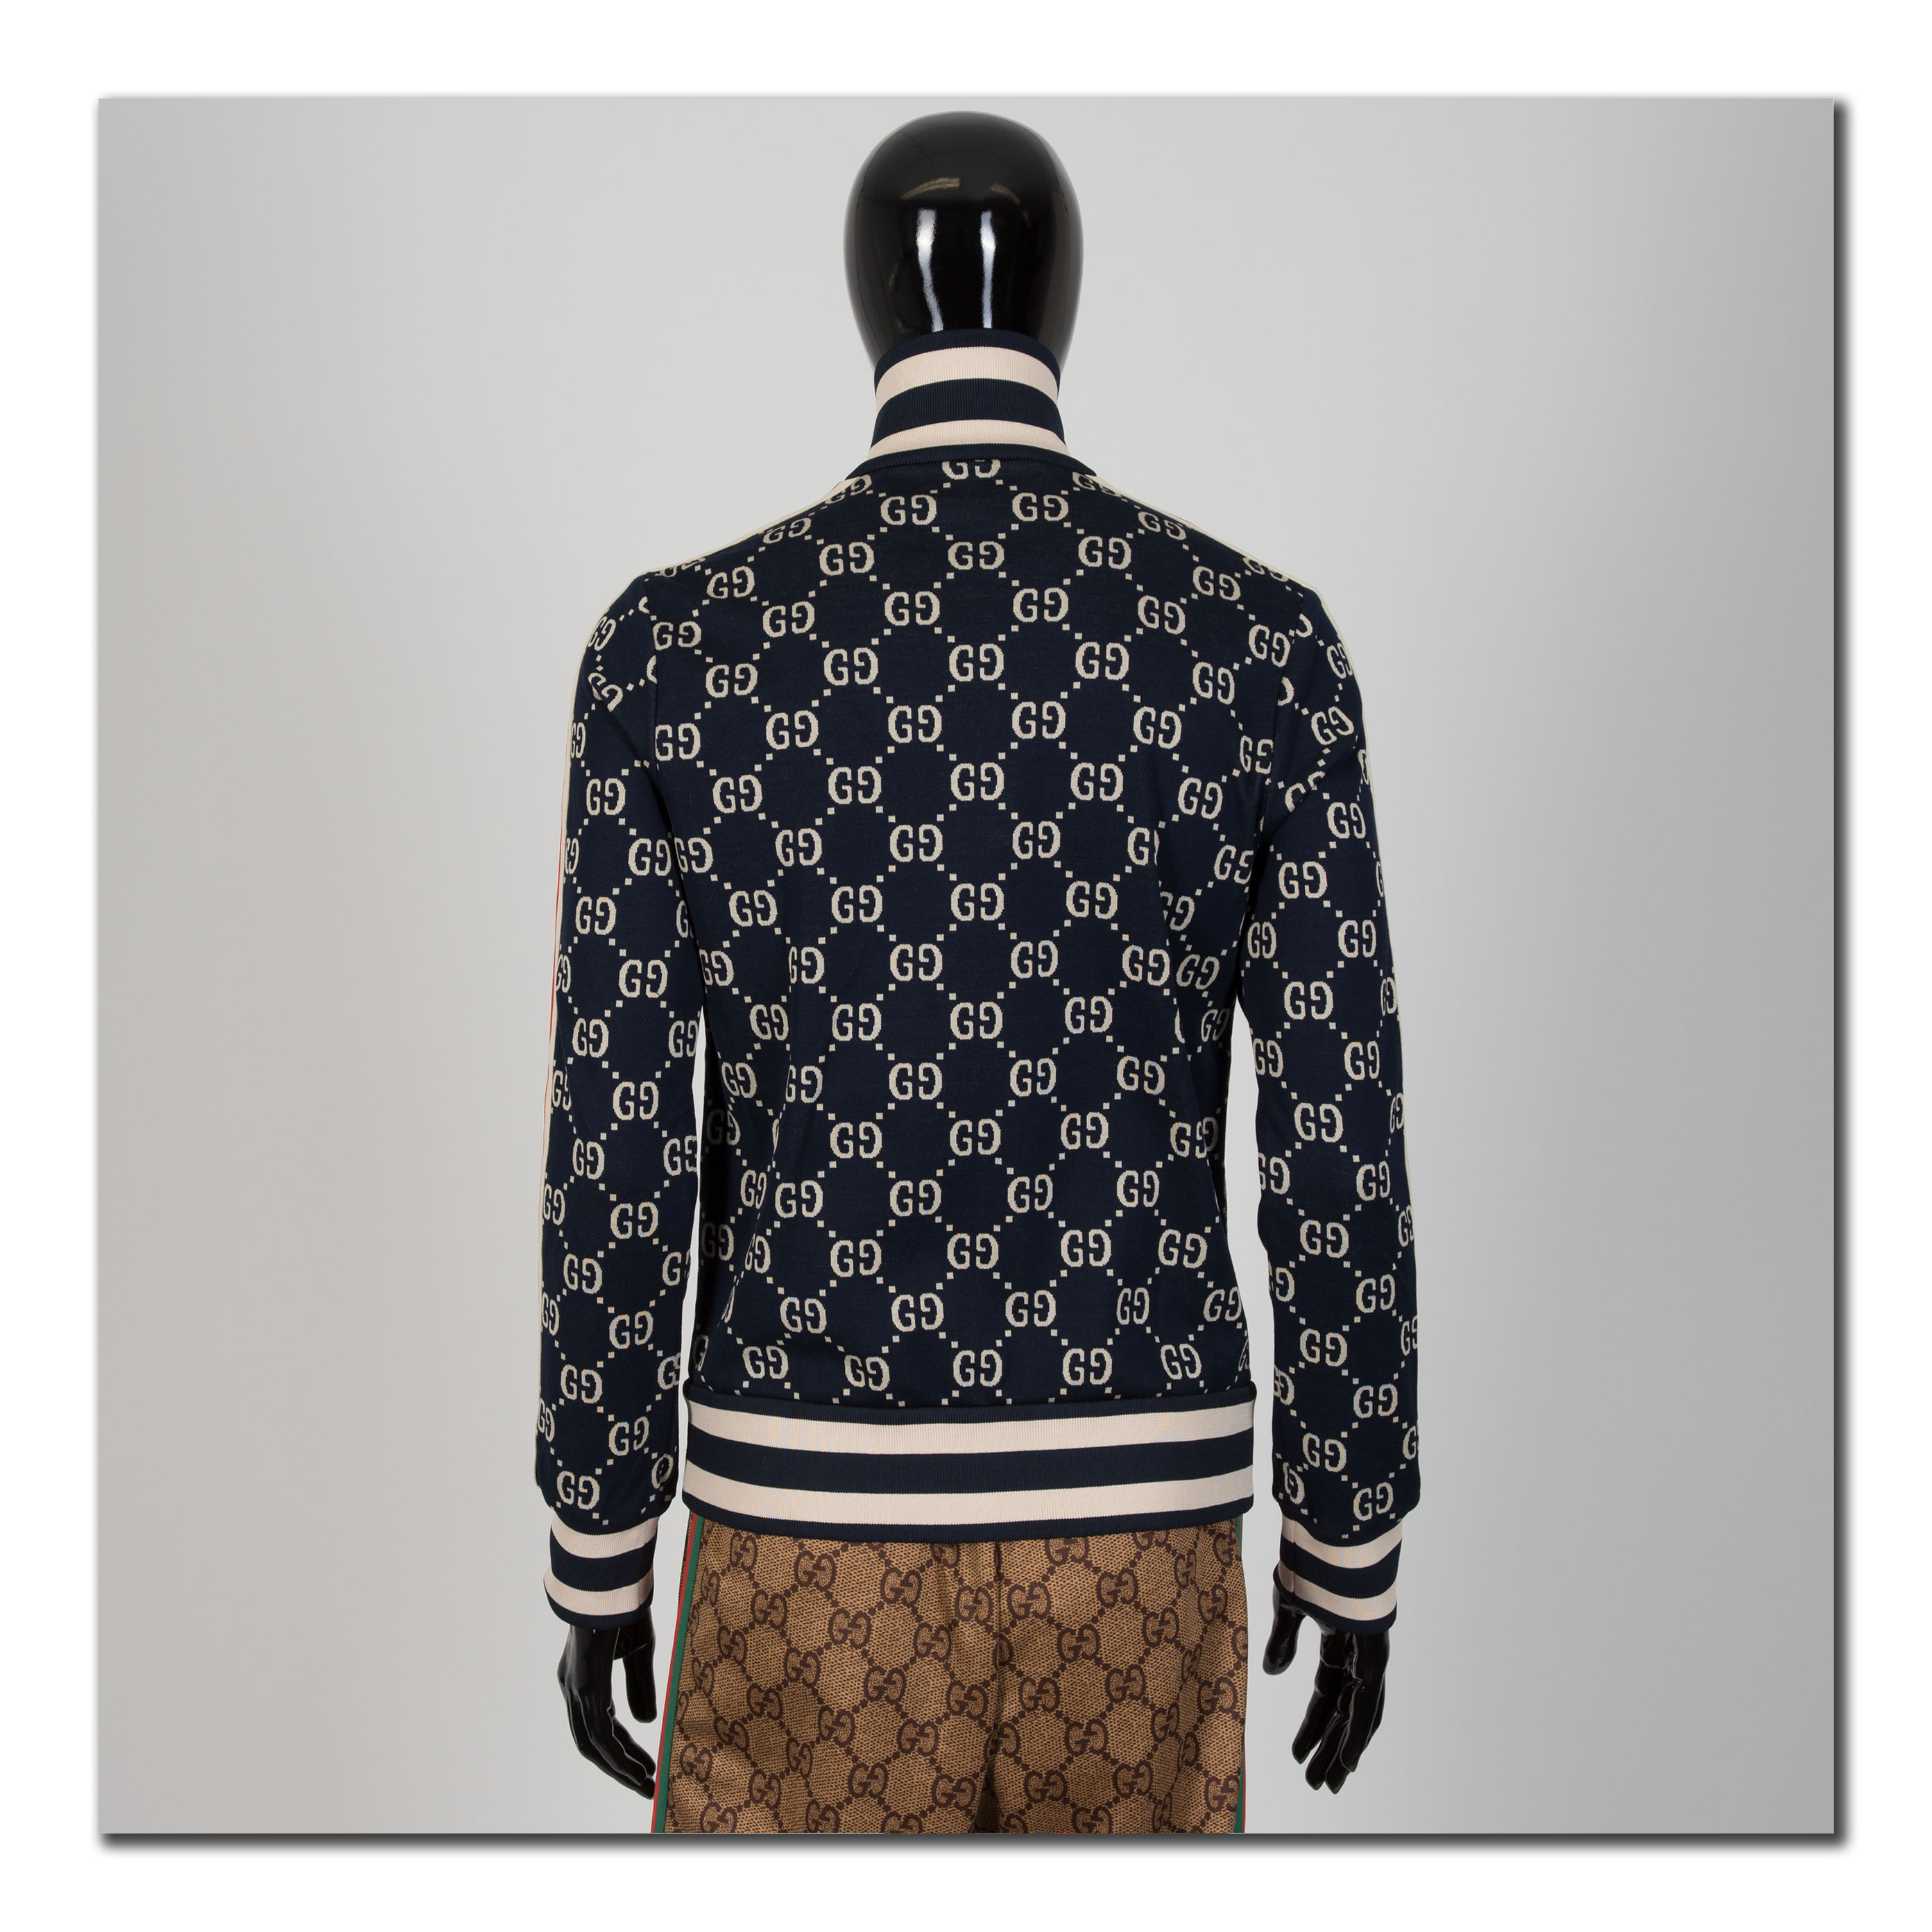 a215f141e Details about GUCCI 1980$ Authentic New GG Jacquard Cotton Zip Up Jacket